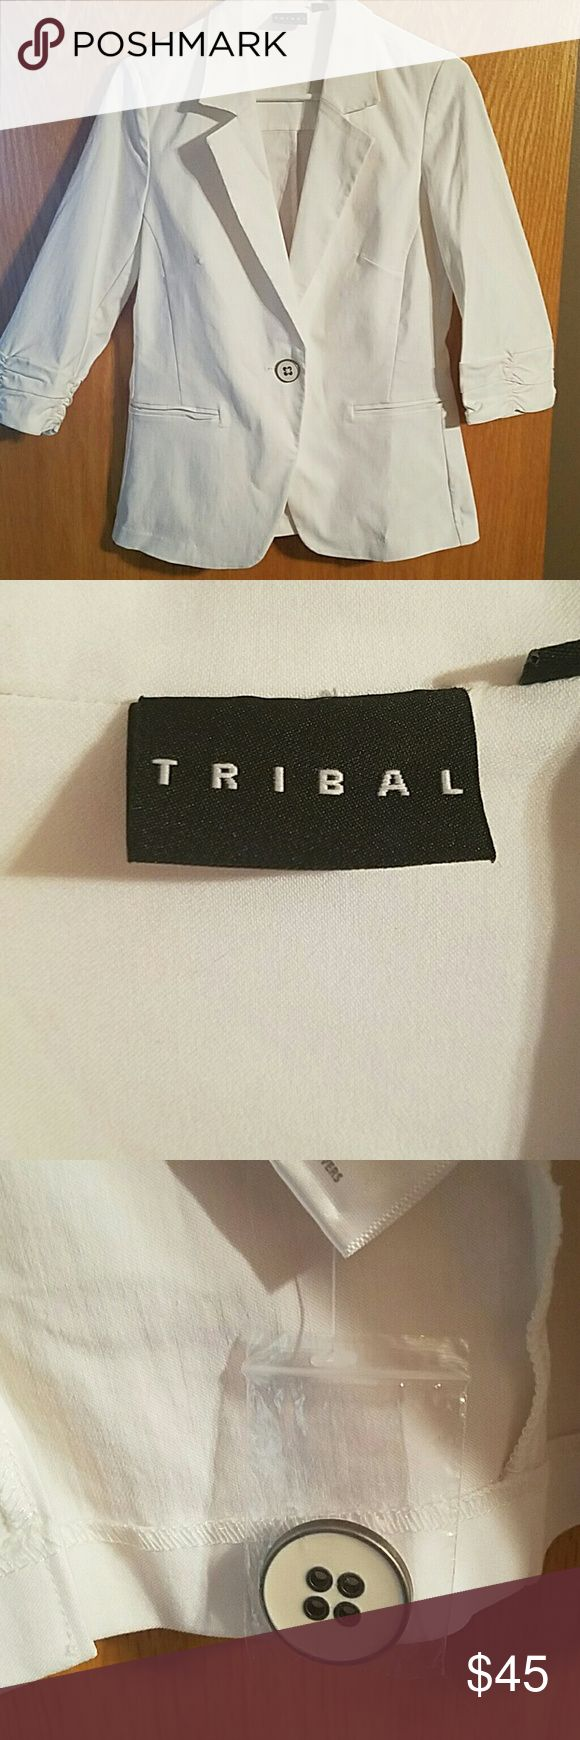 Women's suit jacket White suit jacket, NWOT never worn. Excellent condition. Super cute dressed up or dressed down. Tribal Jackets & Coats Blazers